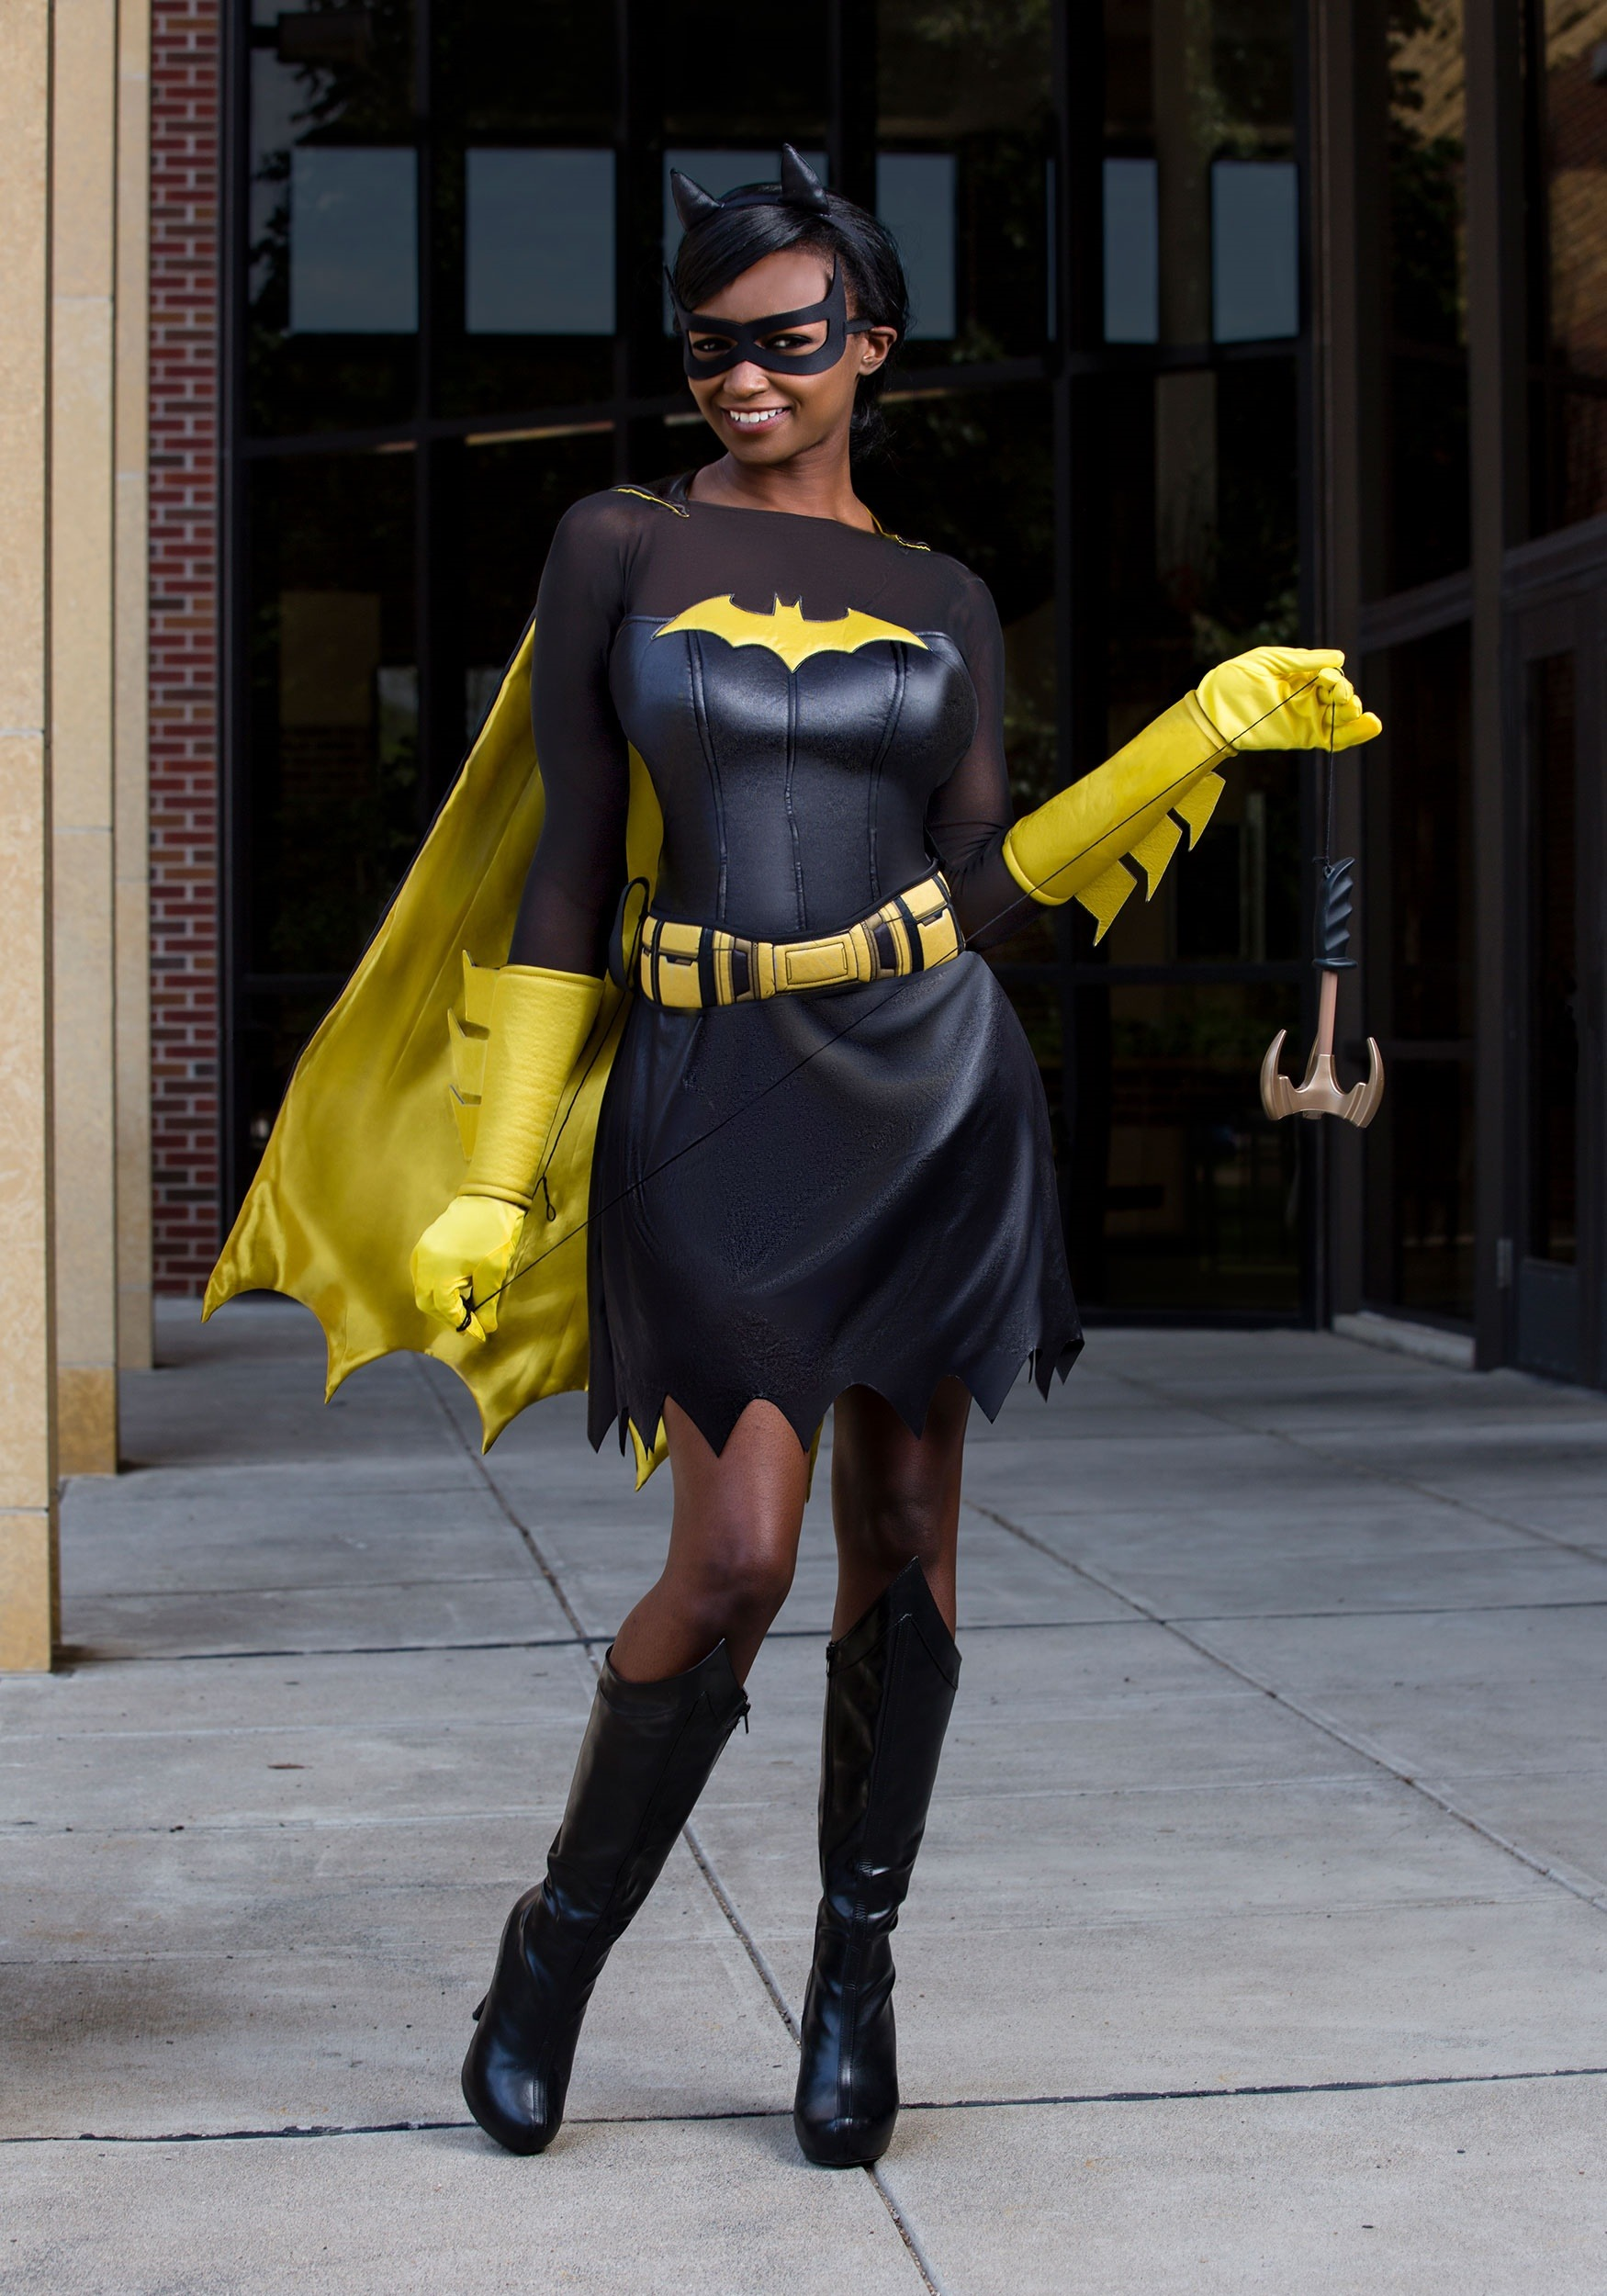 Dc Deluxe Batgirl Costume For Women